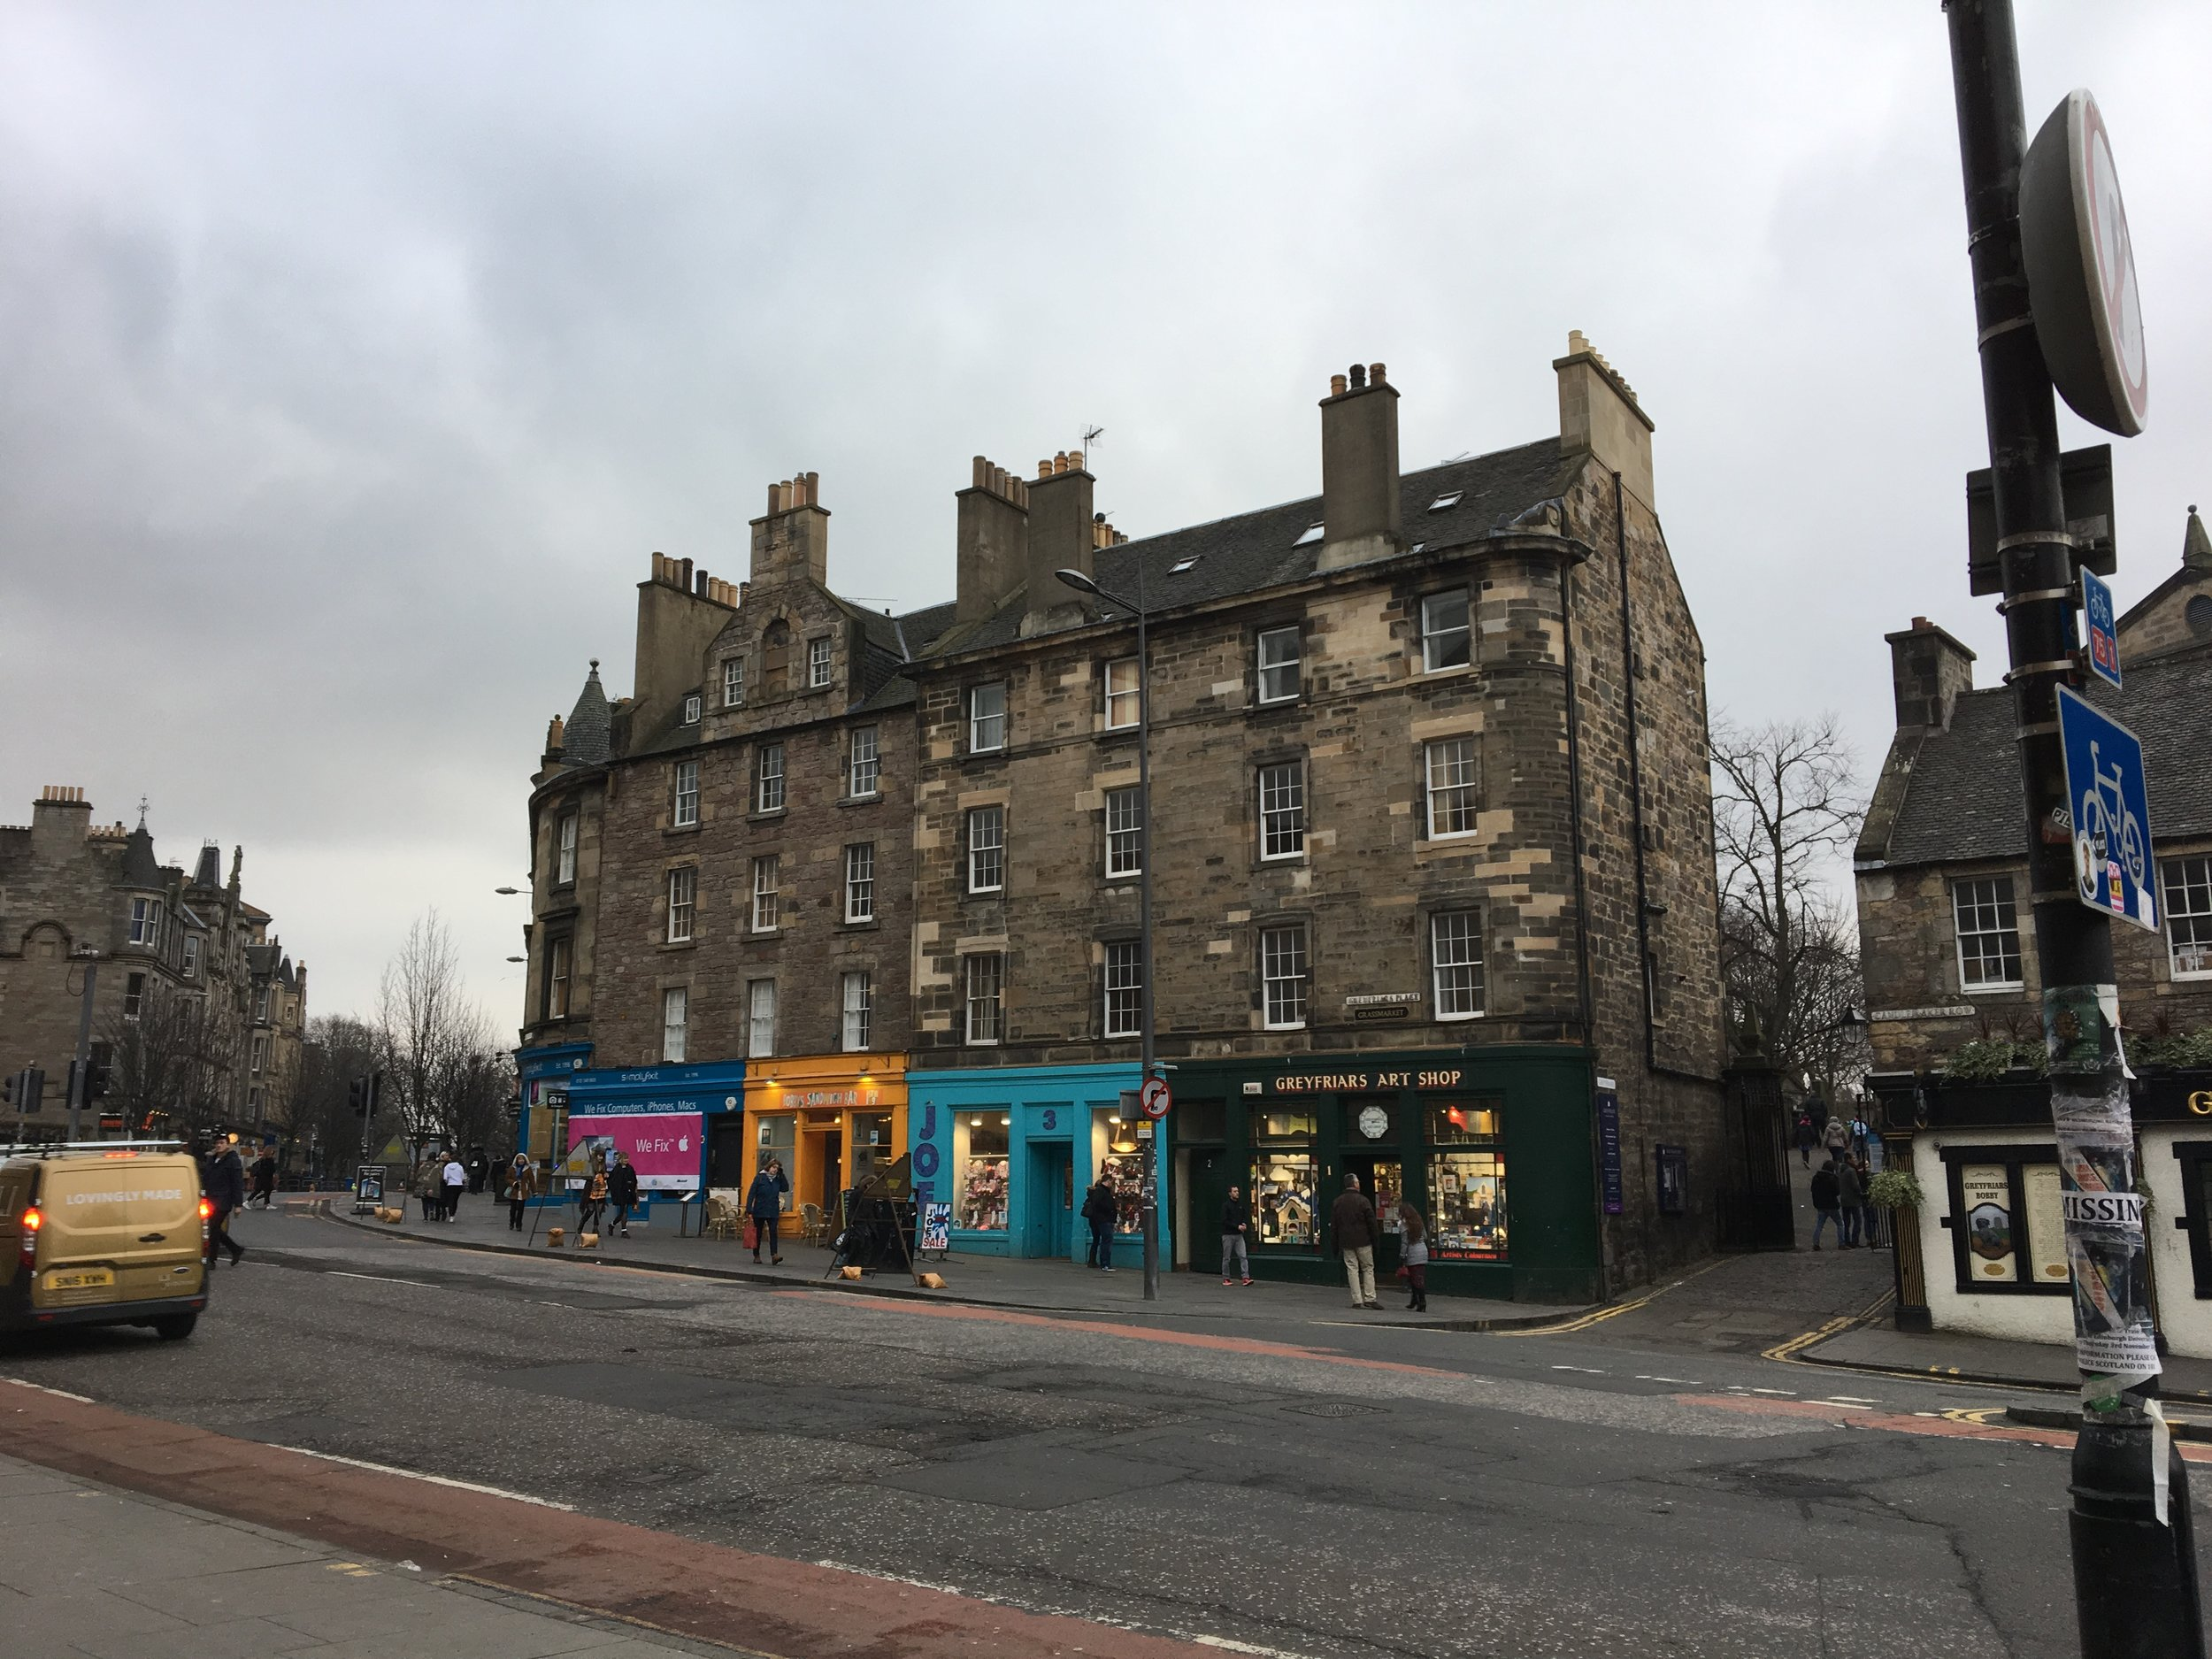 Buildings beside Greyfriar's